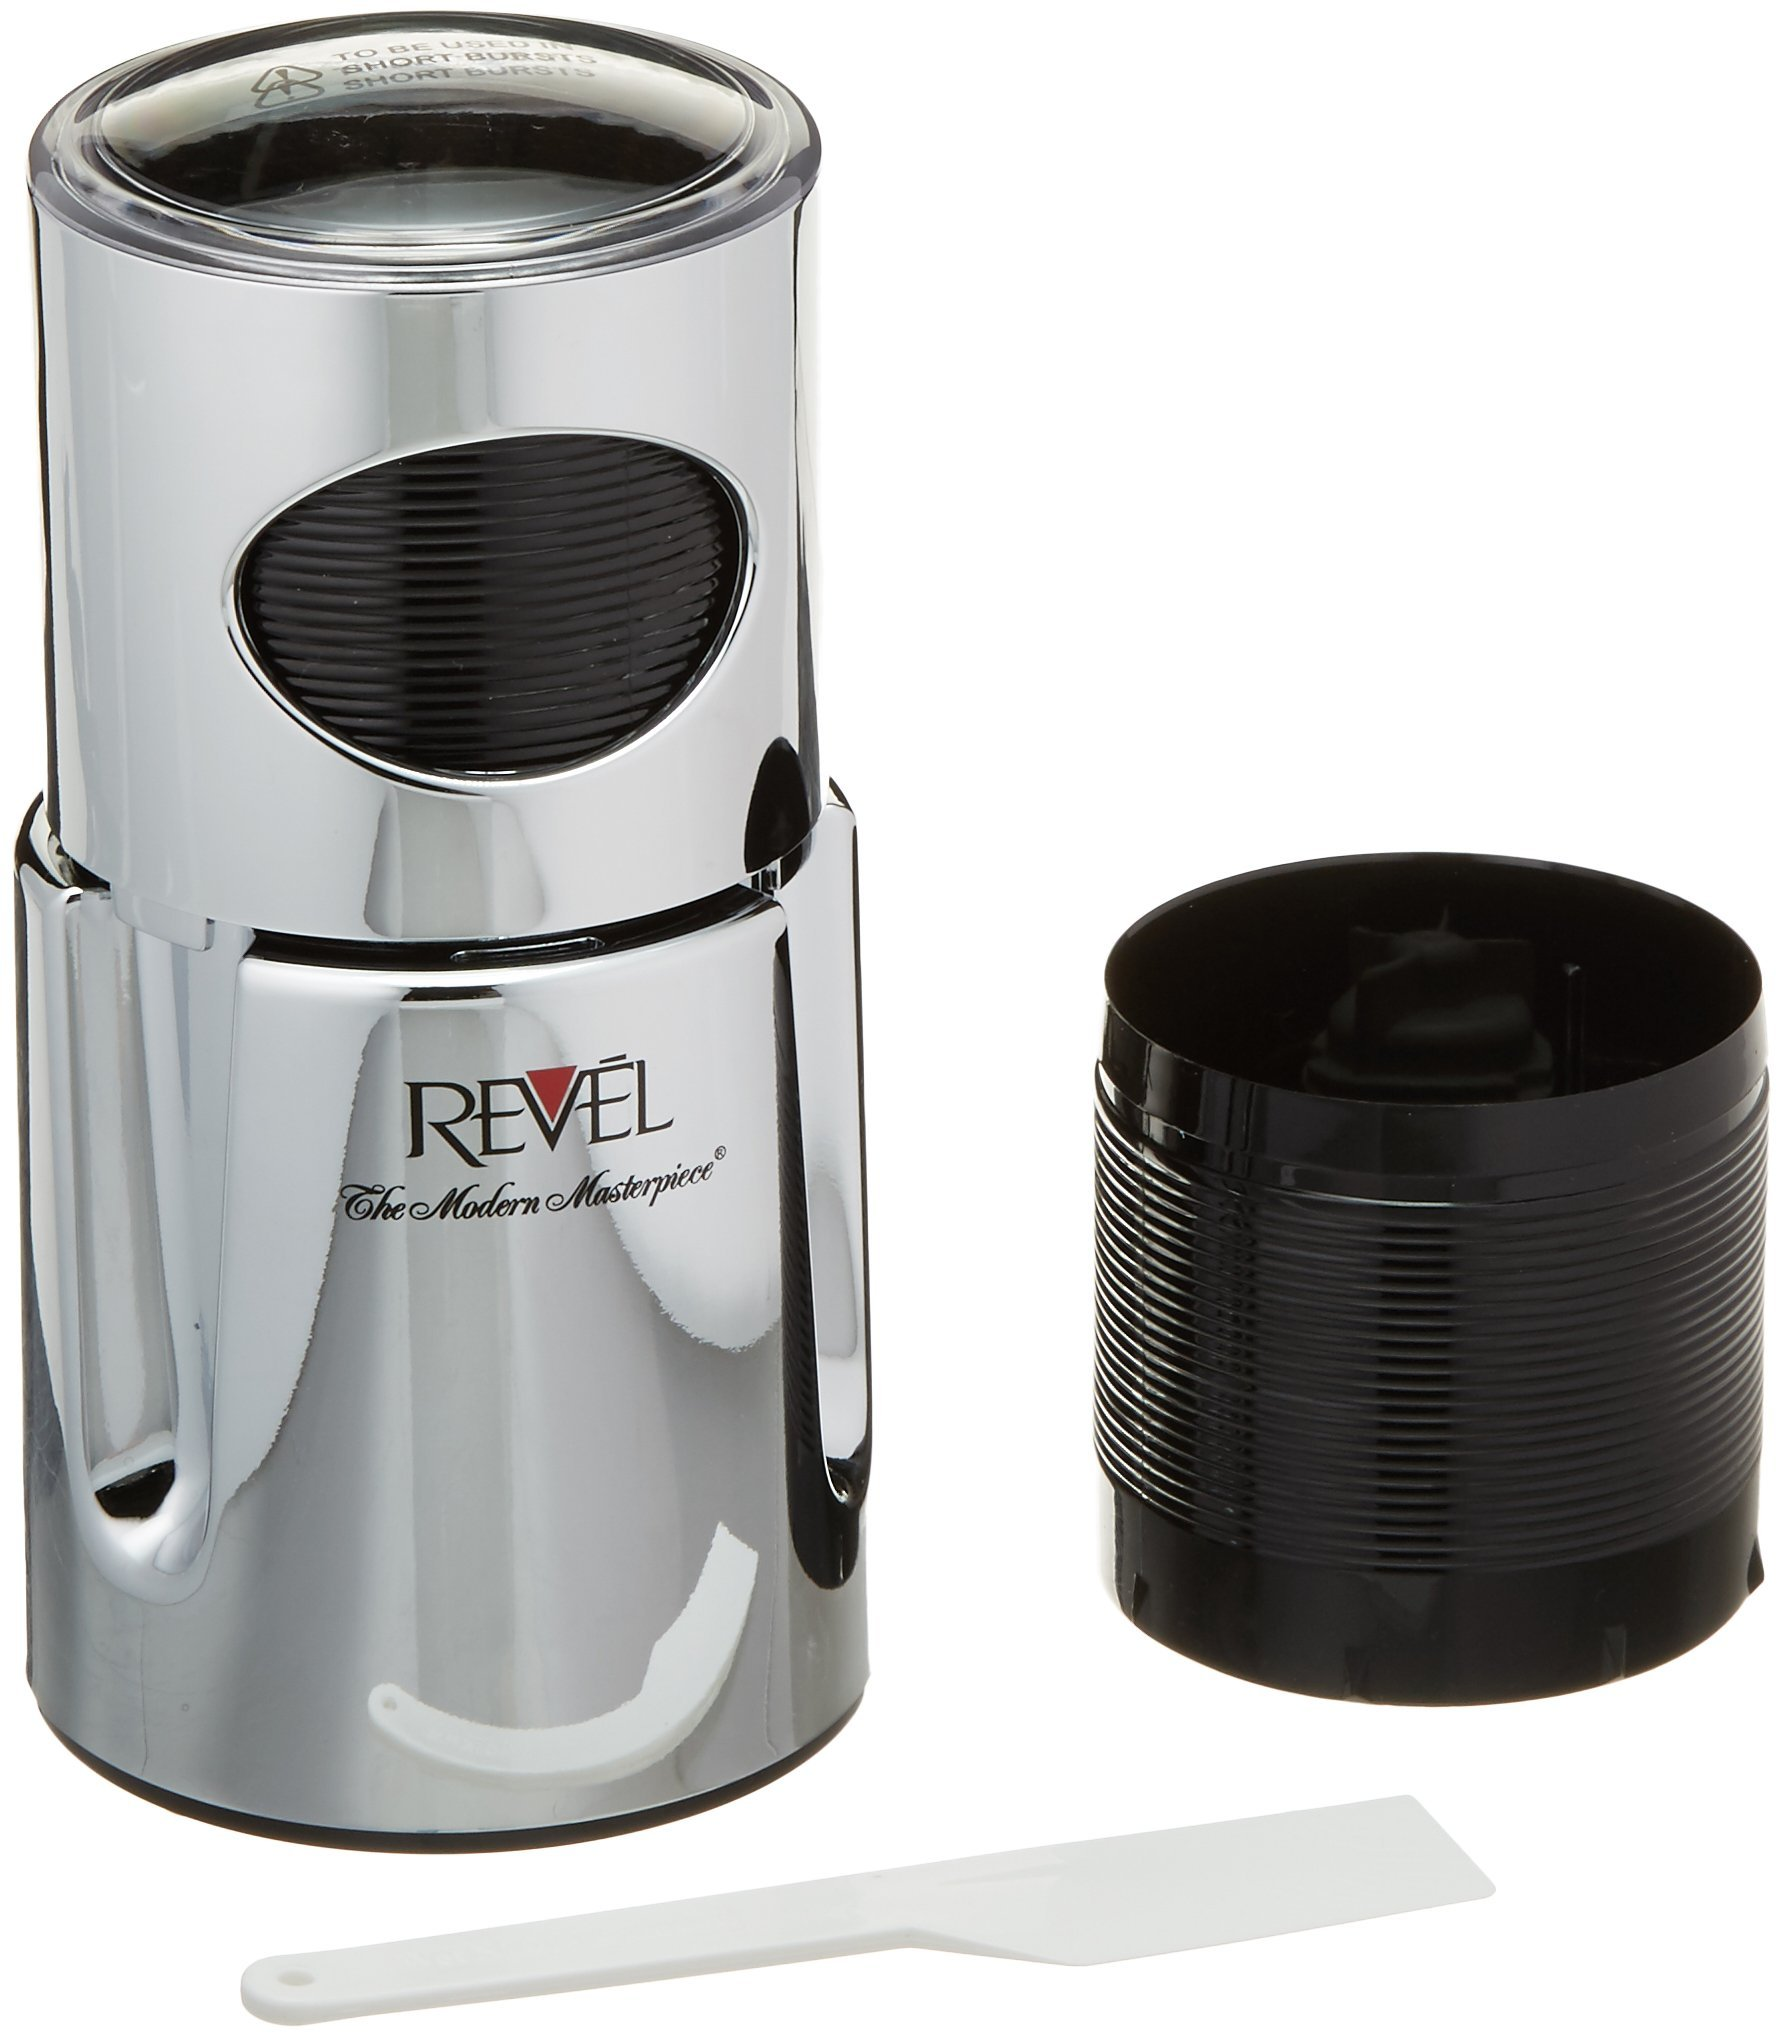 Revel CCM101CP Chrome Wet and Dry Coffee/Spice/Chutney Grinder with Extra Cup, 110-volt by Revel